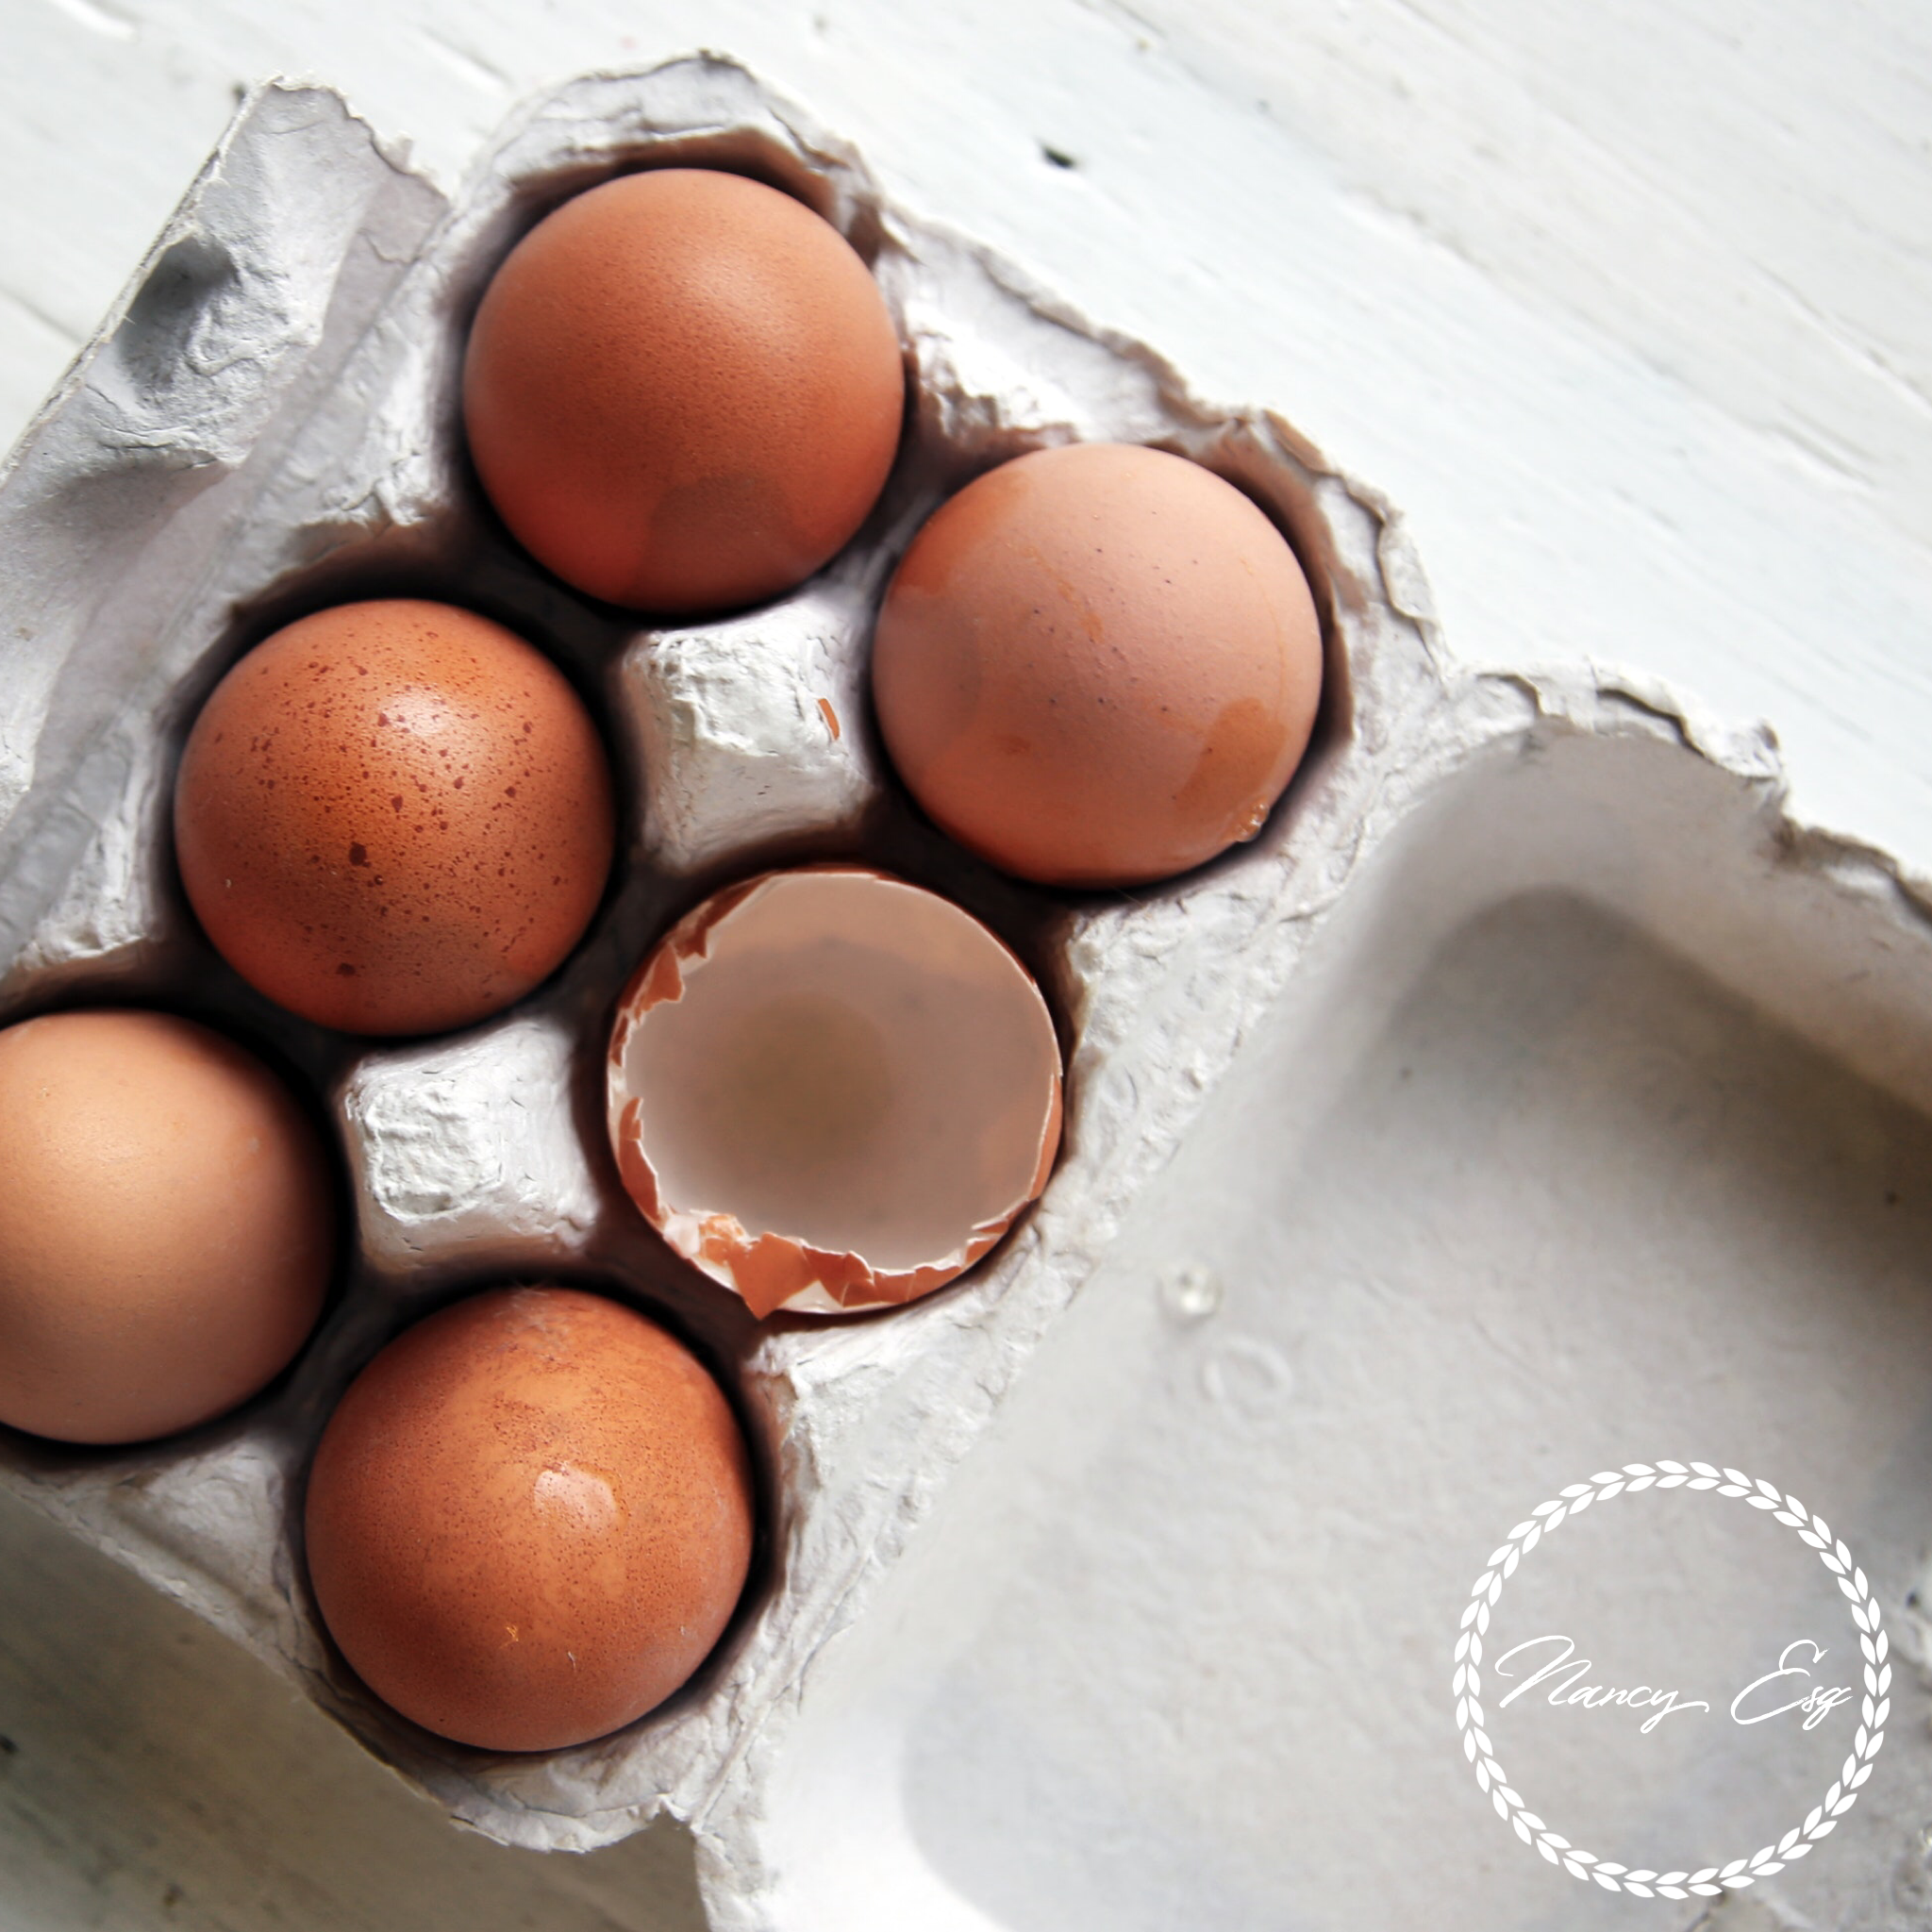 When to crack the eggs?  - hint: only one time, so make it count.